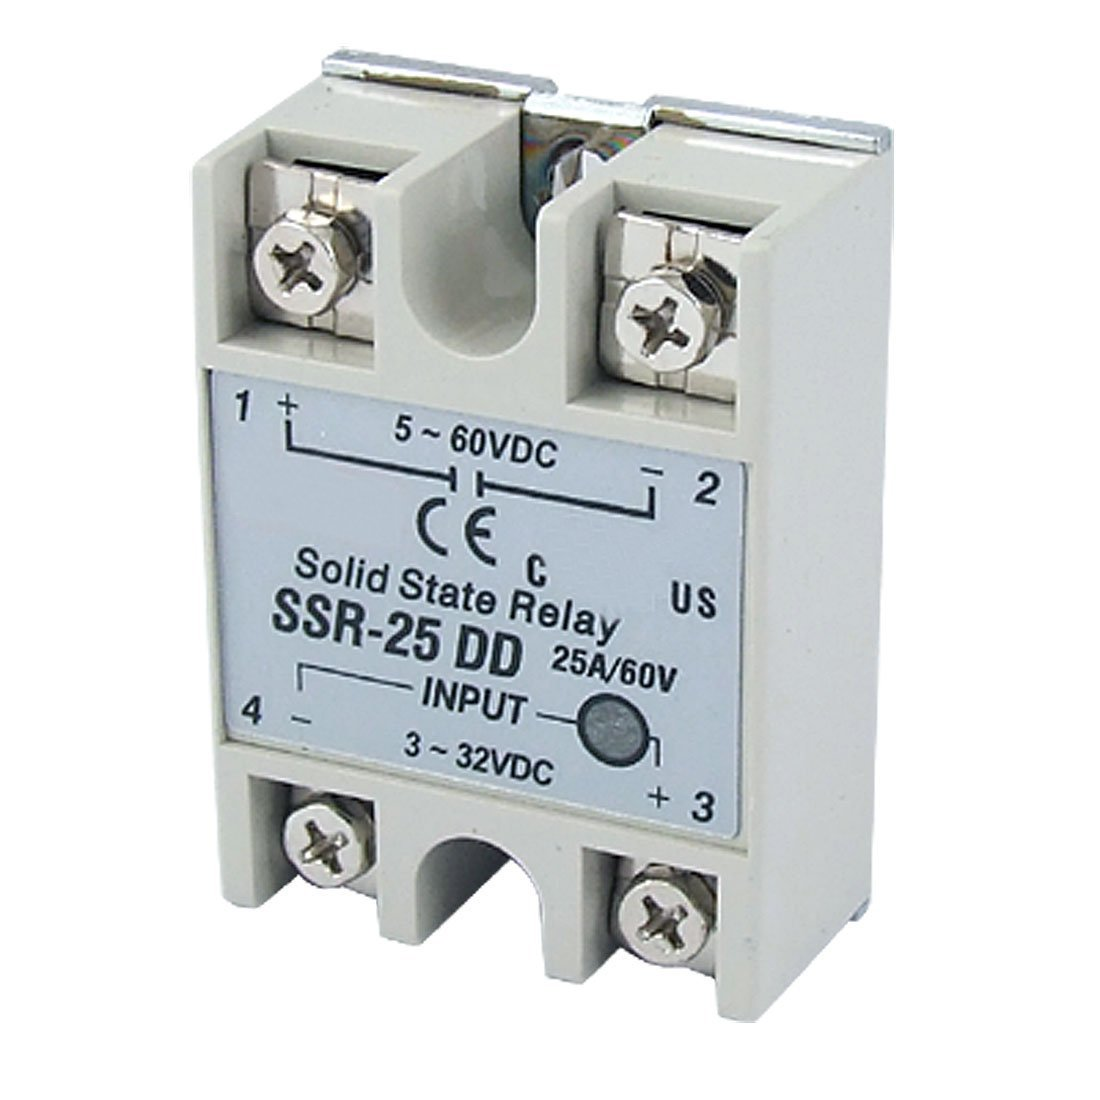 Amazoncom Lightobject ESSRDAC Solid State Relay DC In AC Out - Solid state relay gets hot